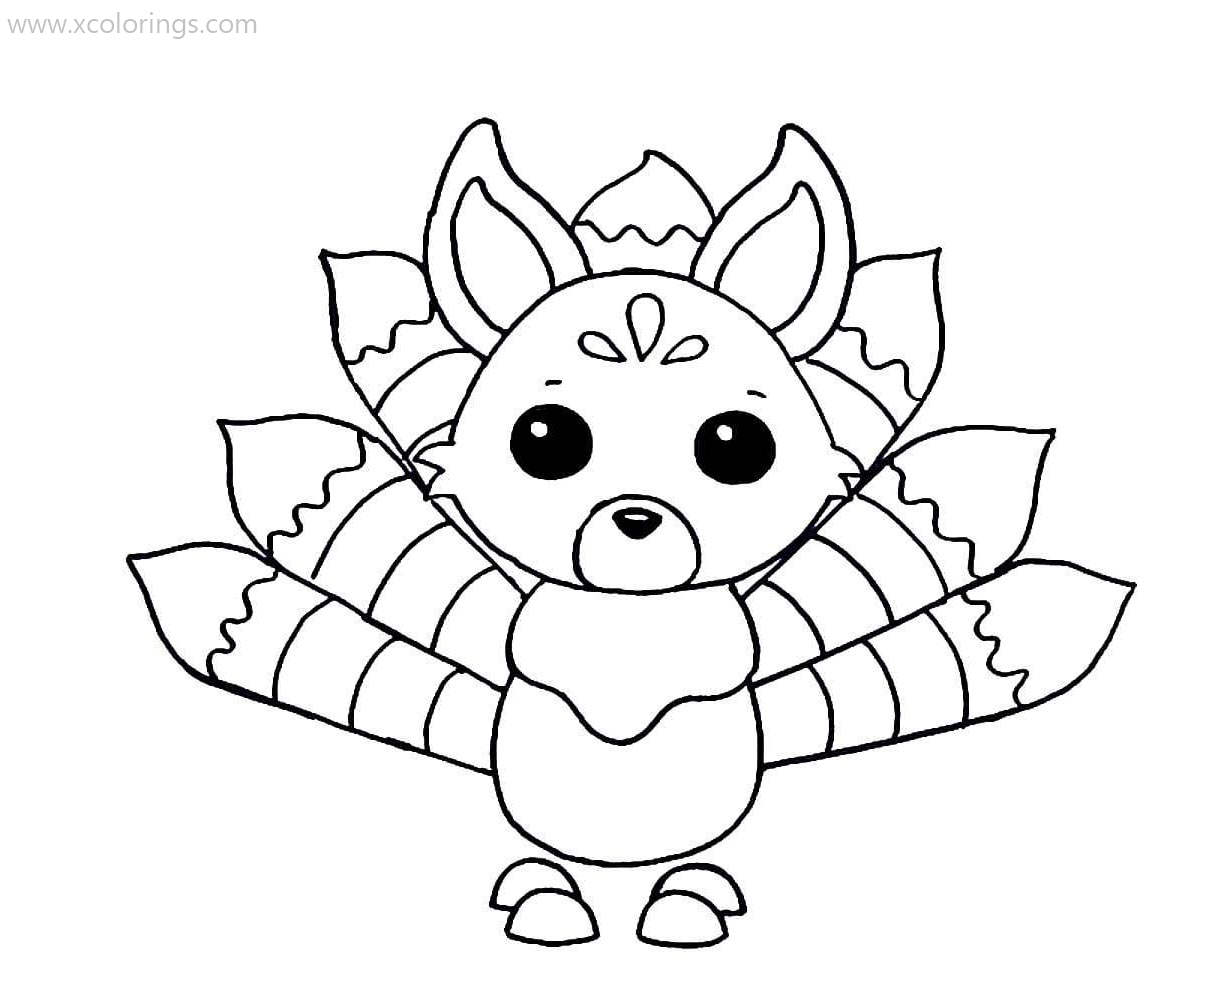 Roblox Adopt Me Coloring Pages Kitsune - XColorings.com